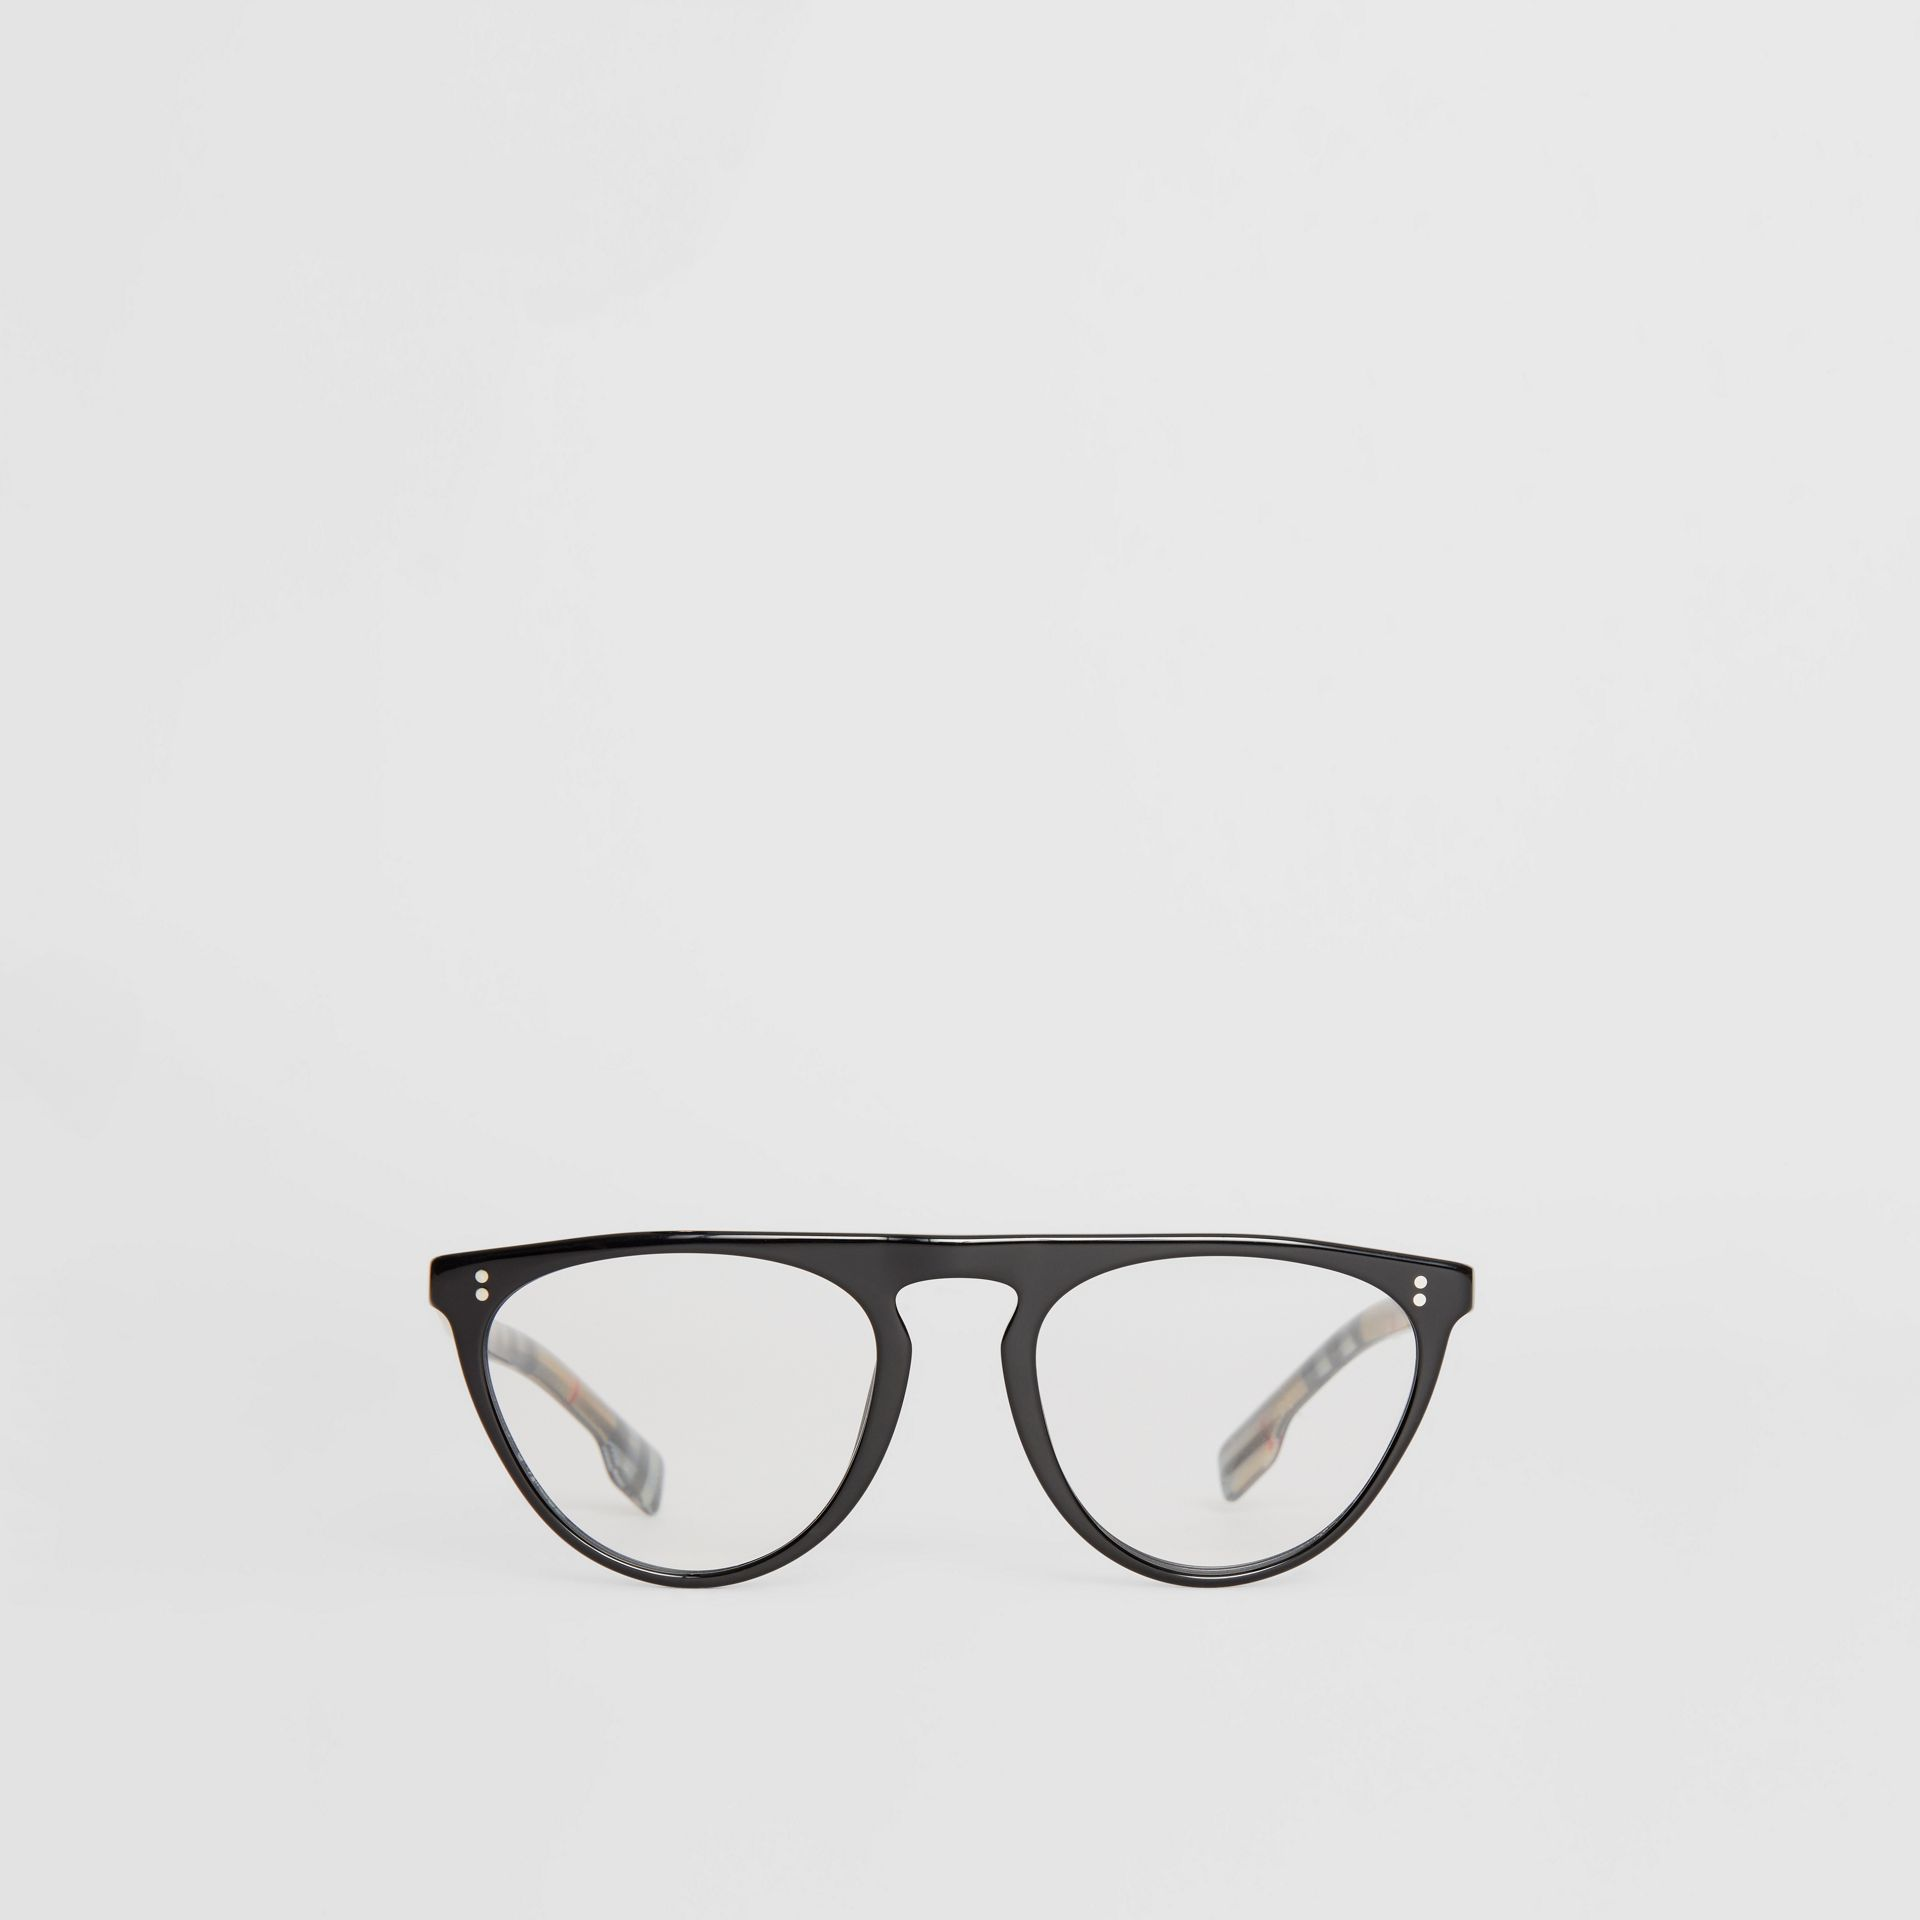 Keyhole D-shaped Optical Frames in Black - Men | Burberry - gallery image 0